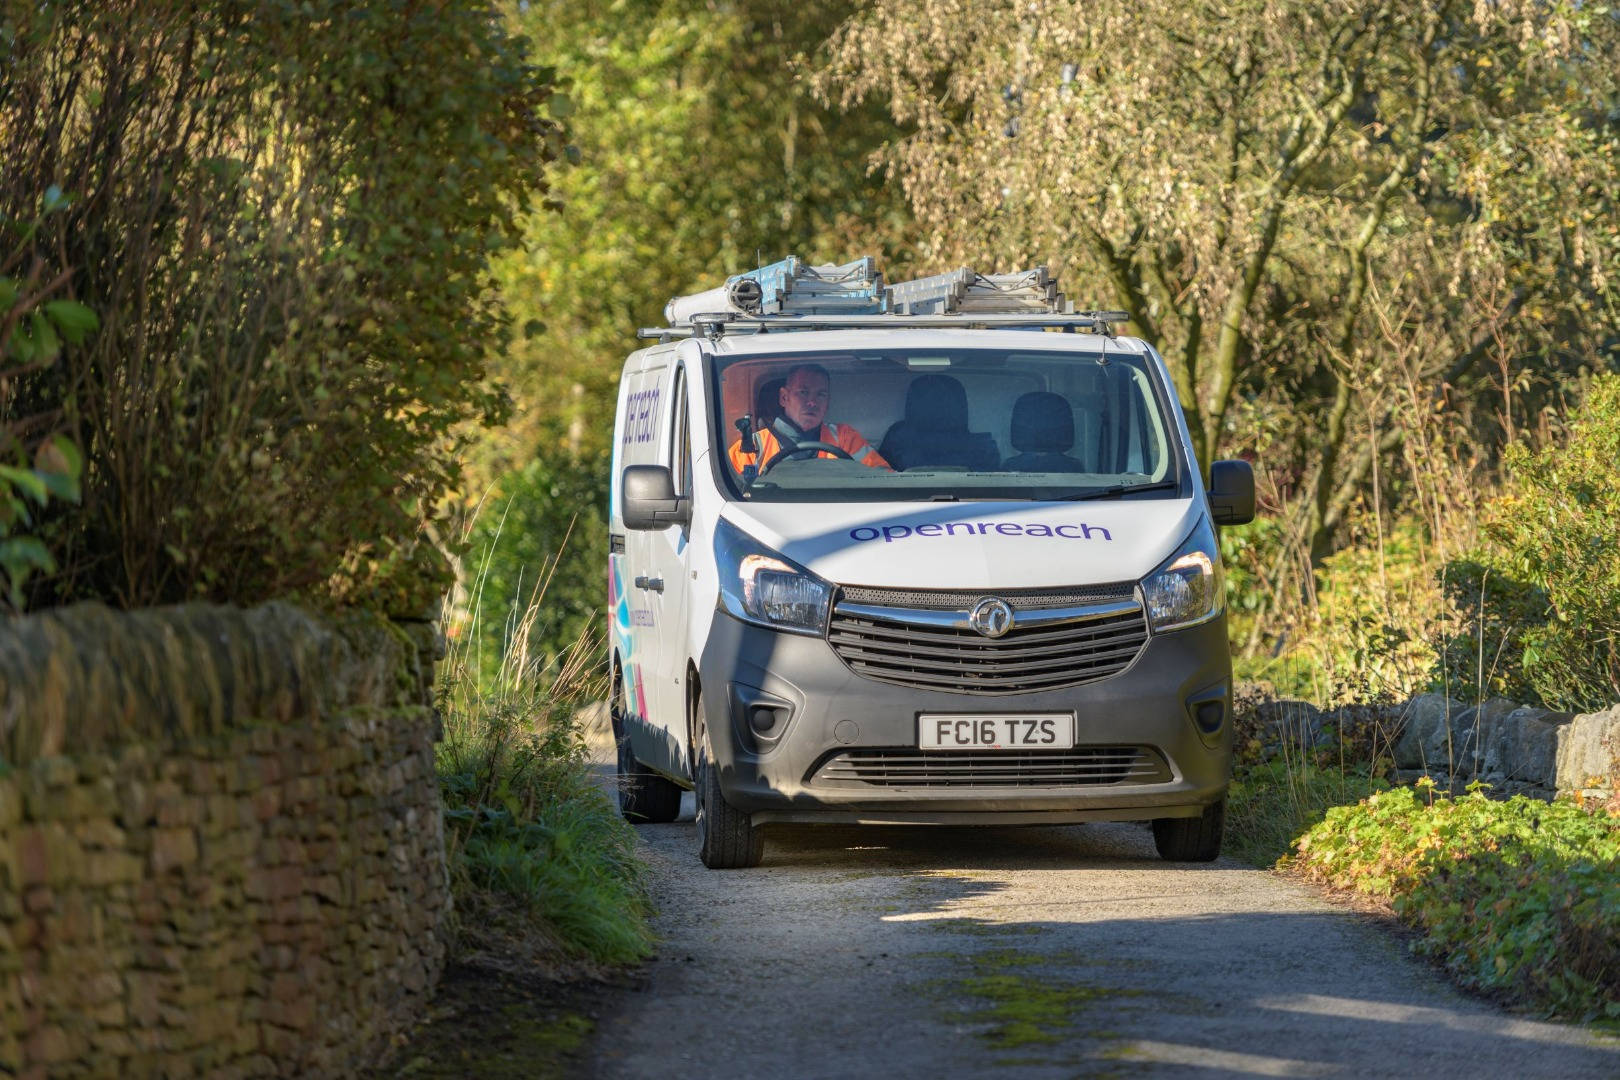 Broadband boost for Cheshire as Openreach targets